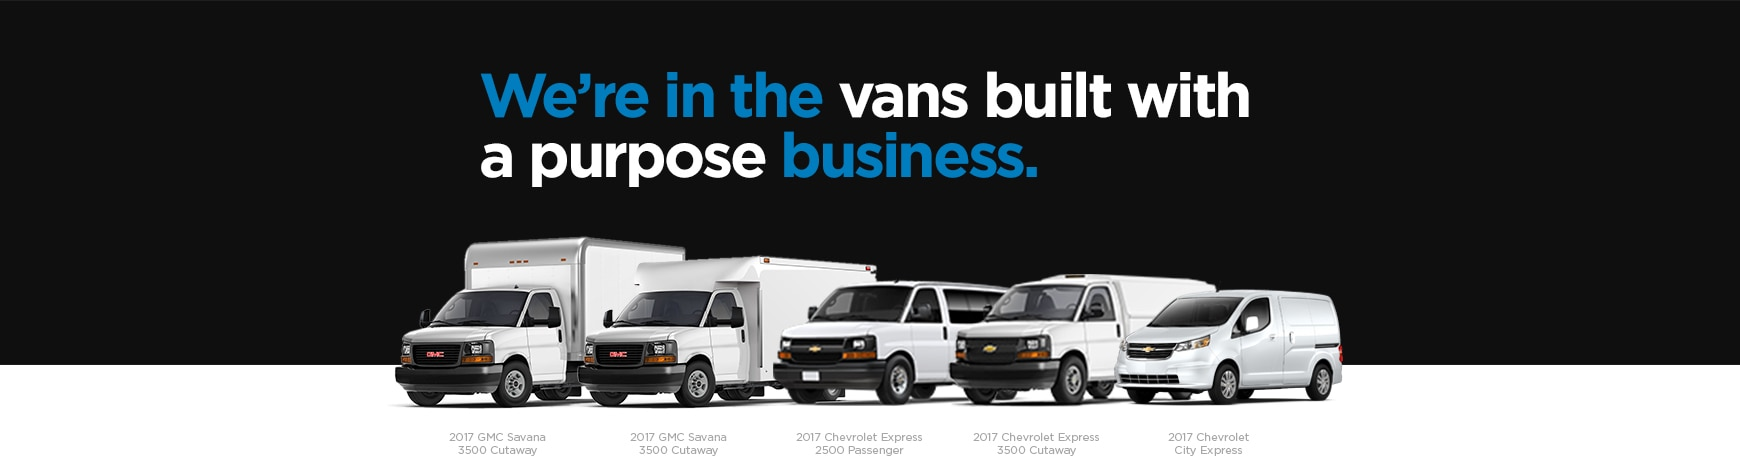 The GM Fleet lineup of GMC and Chevrolet vans.